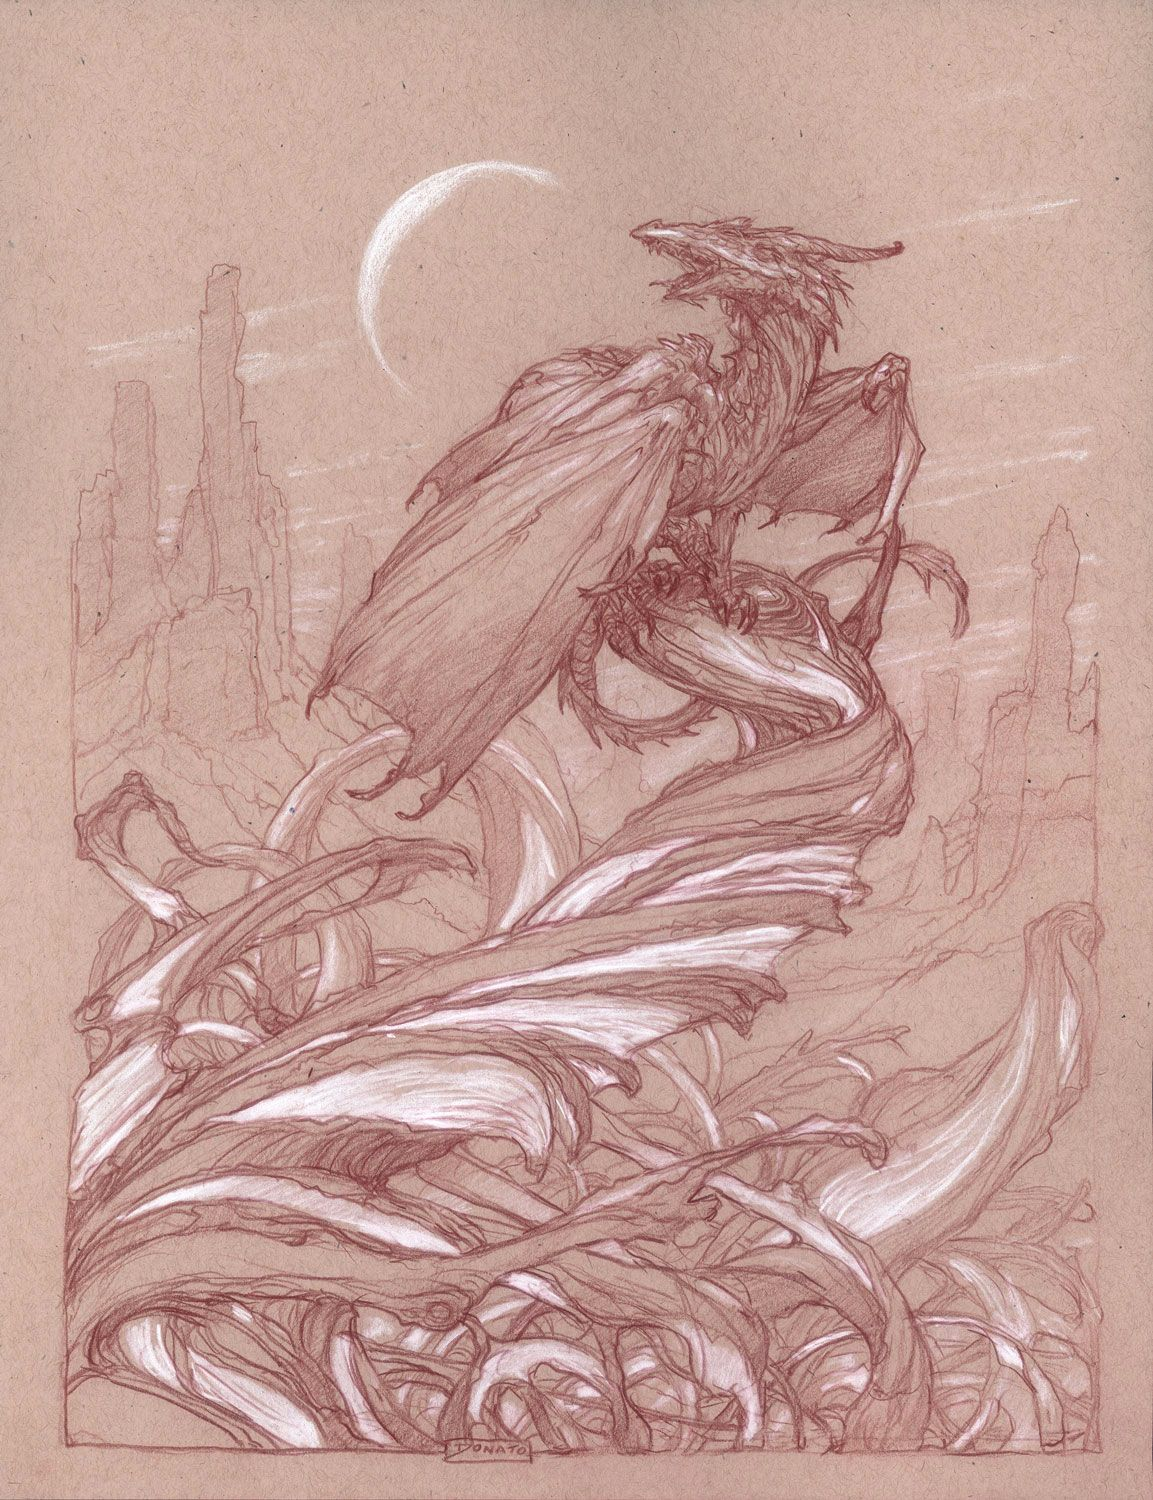 11″ x 14″ Watercolor Pencil and Chalk on Toned Paper Archivally mounted and matted to 16″ x 20″ in an 8-ply conservation mat. Inspired by the writings of Anne McCaffrey and her Dragonriders of Pern novel series.